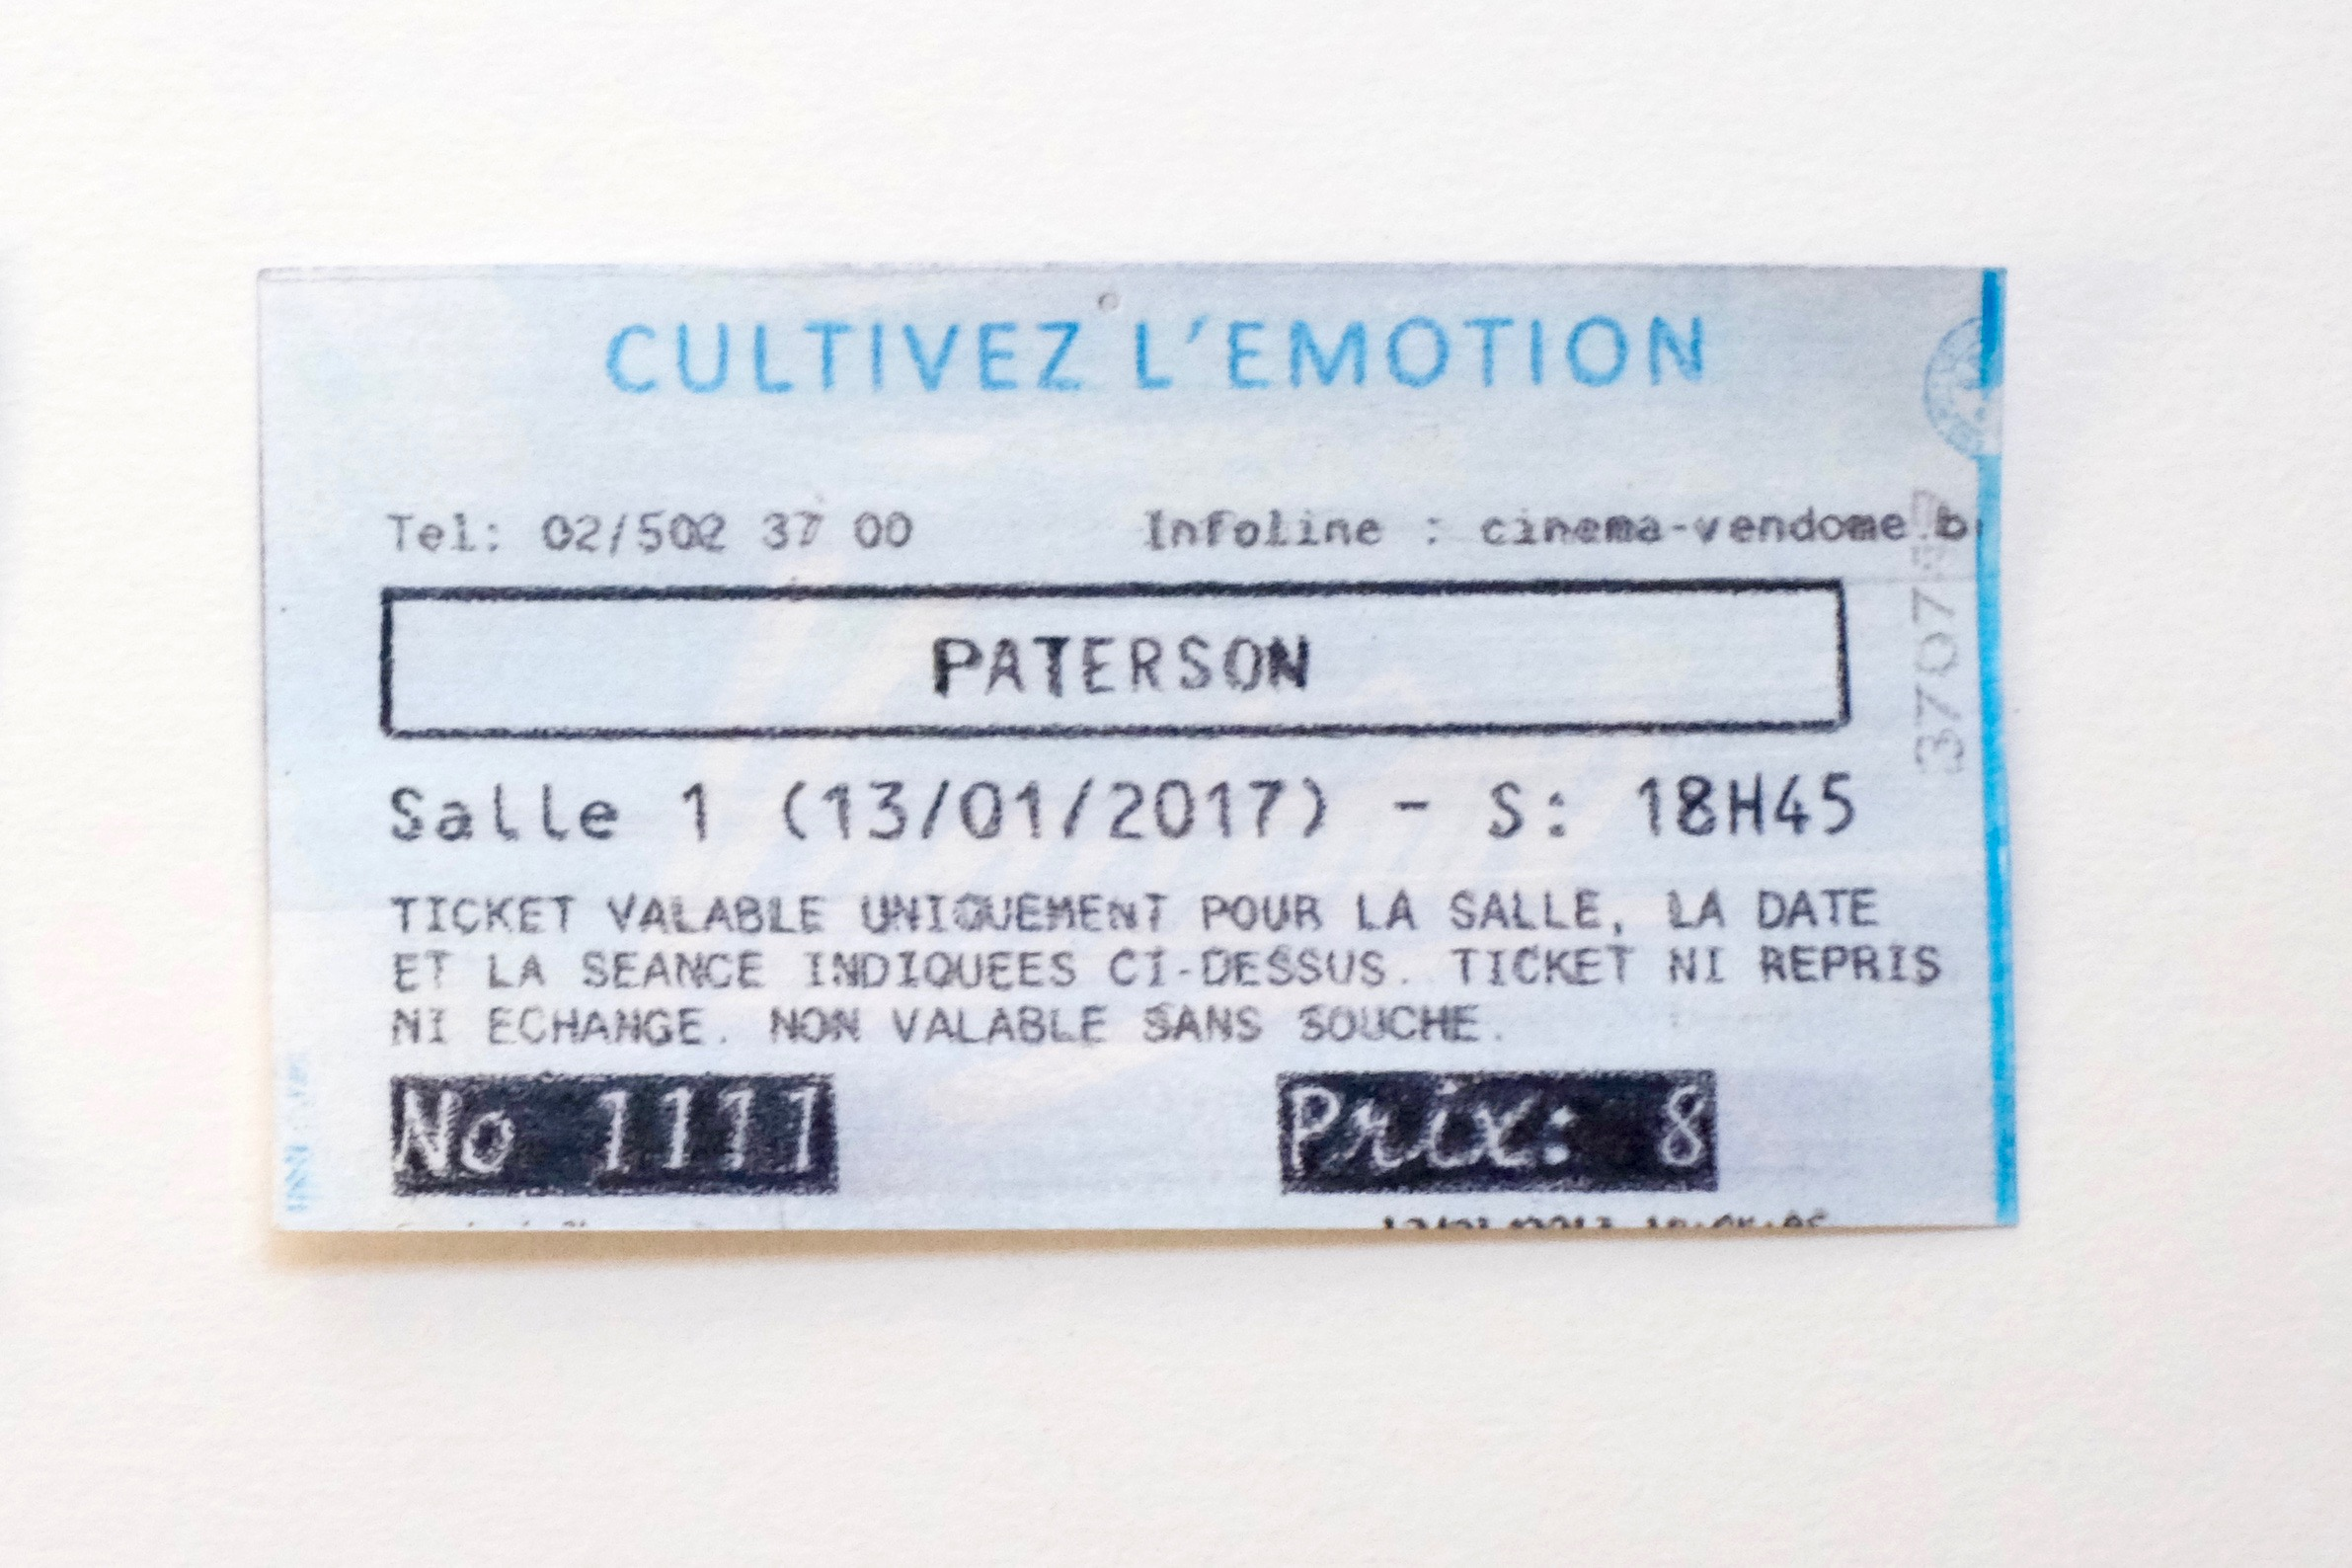 Falsifié ( ticket de cinéma - Paterson), 2017 — Transfer, water, watercolor pencil on paper, 2017 9 x 5 cm